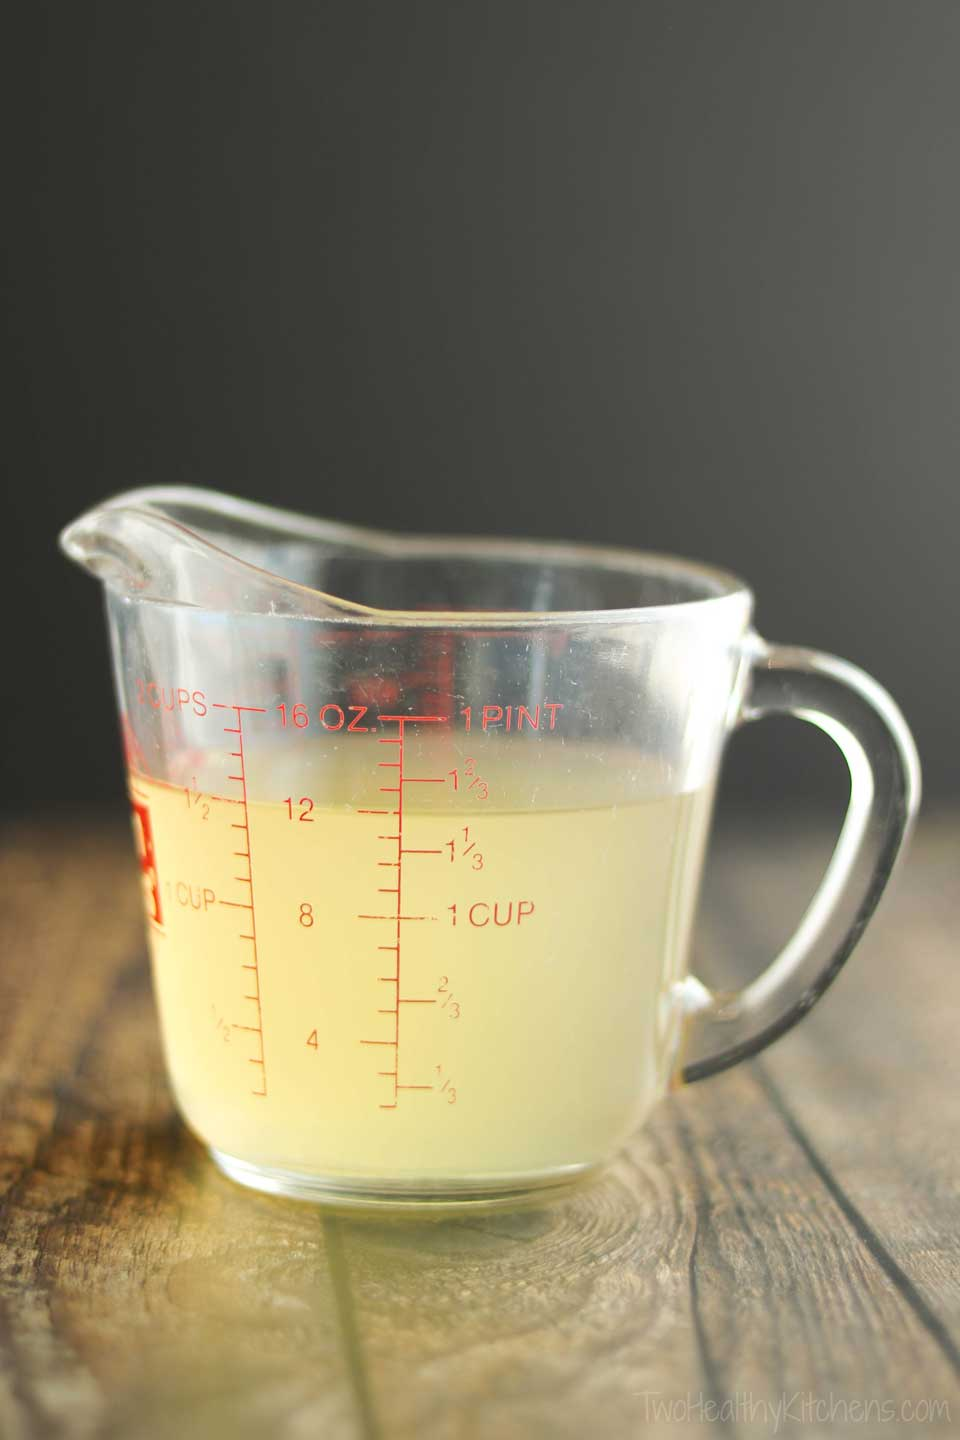 Reduced sodium chicken broth is a great base for most recipes that call for regular chicken broth. Similarly, low sodium beef broth can typically be substituted for regular beef broth, too.